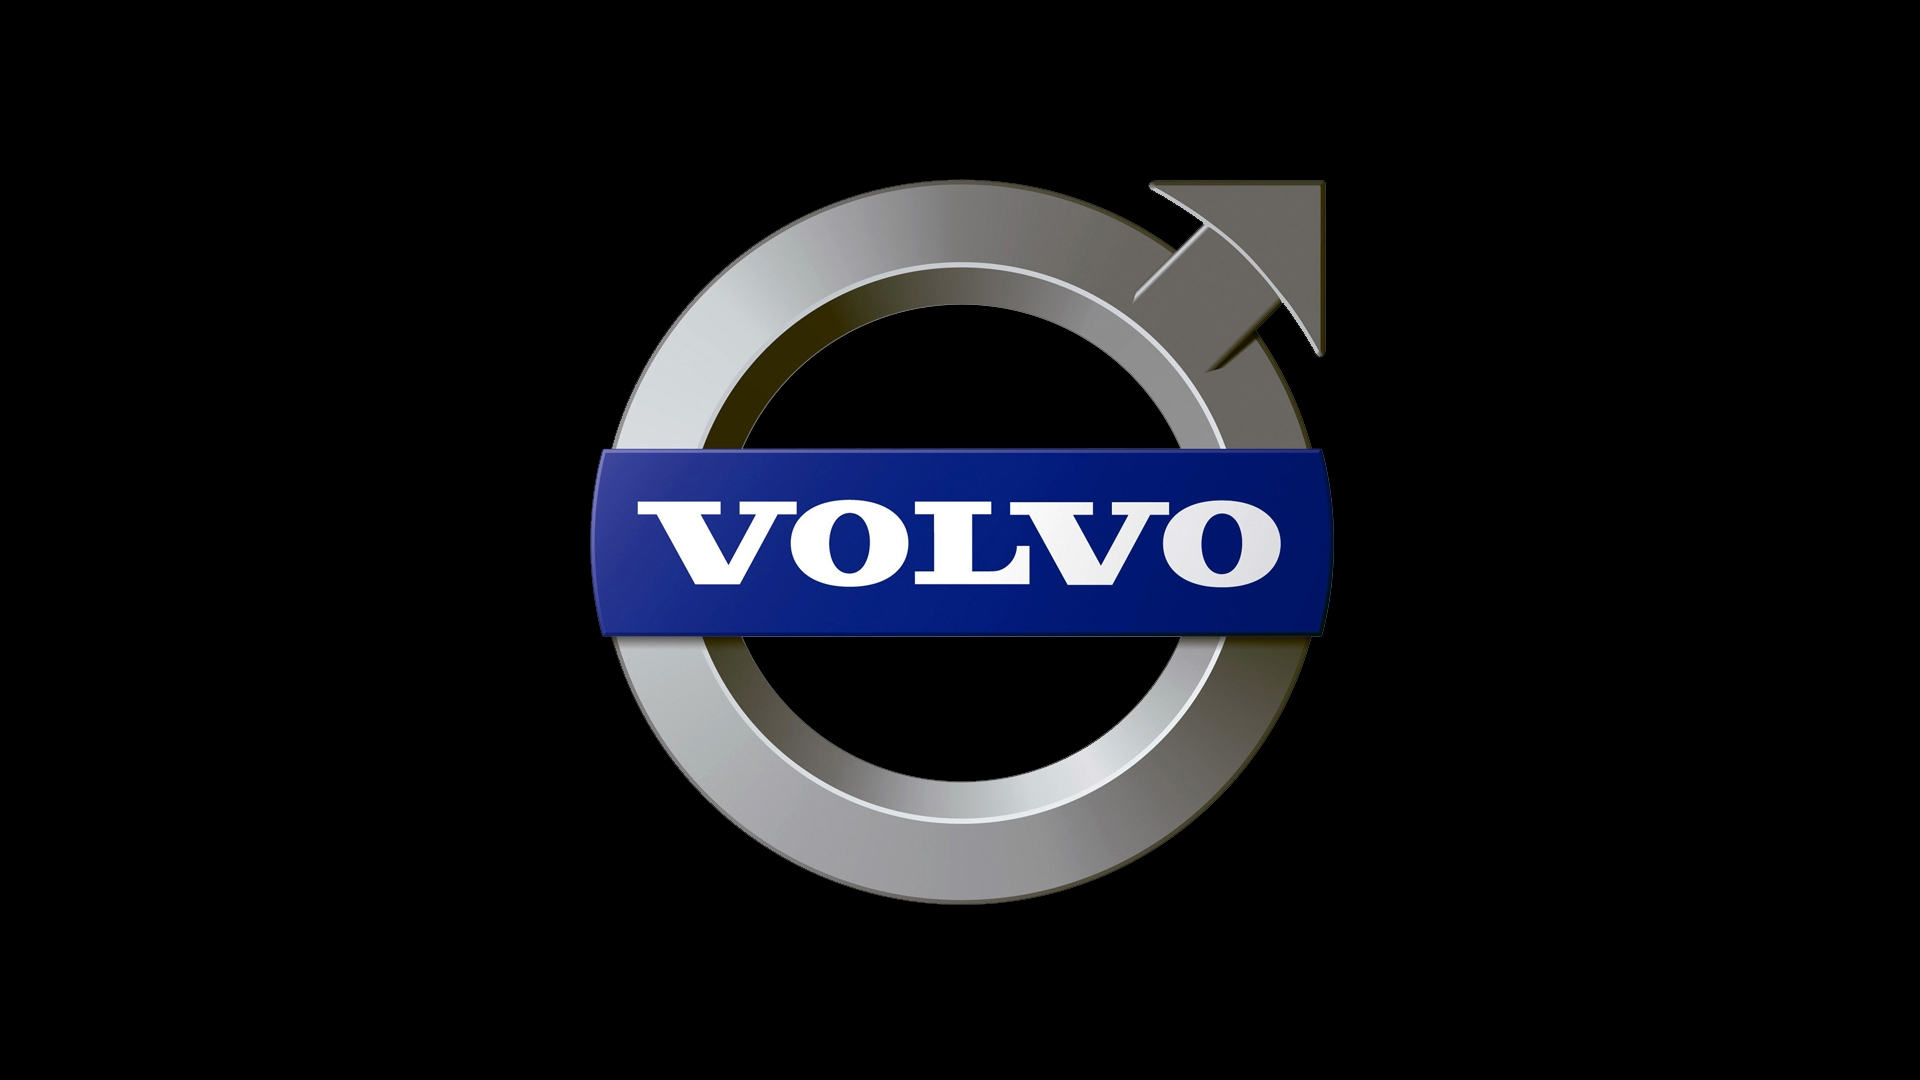 Car Logos Names >> Volvo Logo, Volvo Car Symbol Meaning and History | Car Brand Names.com